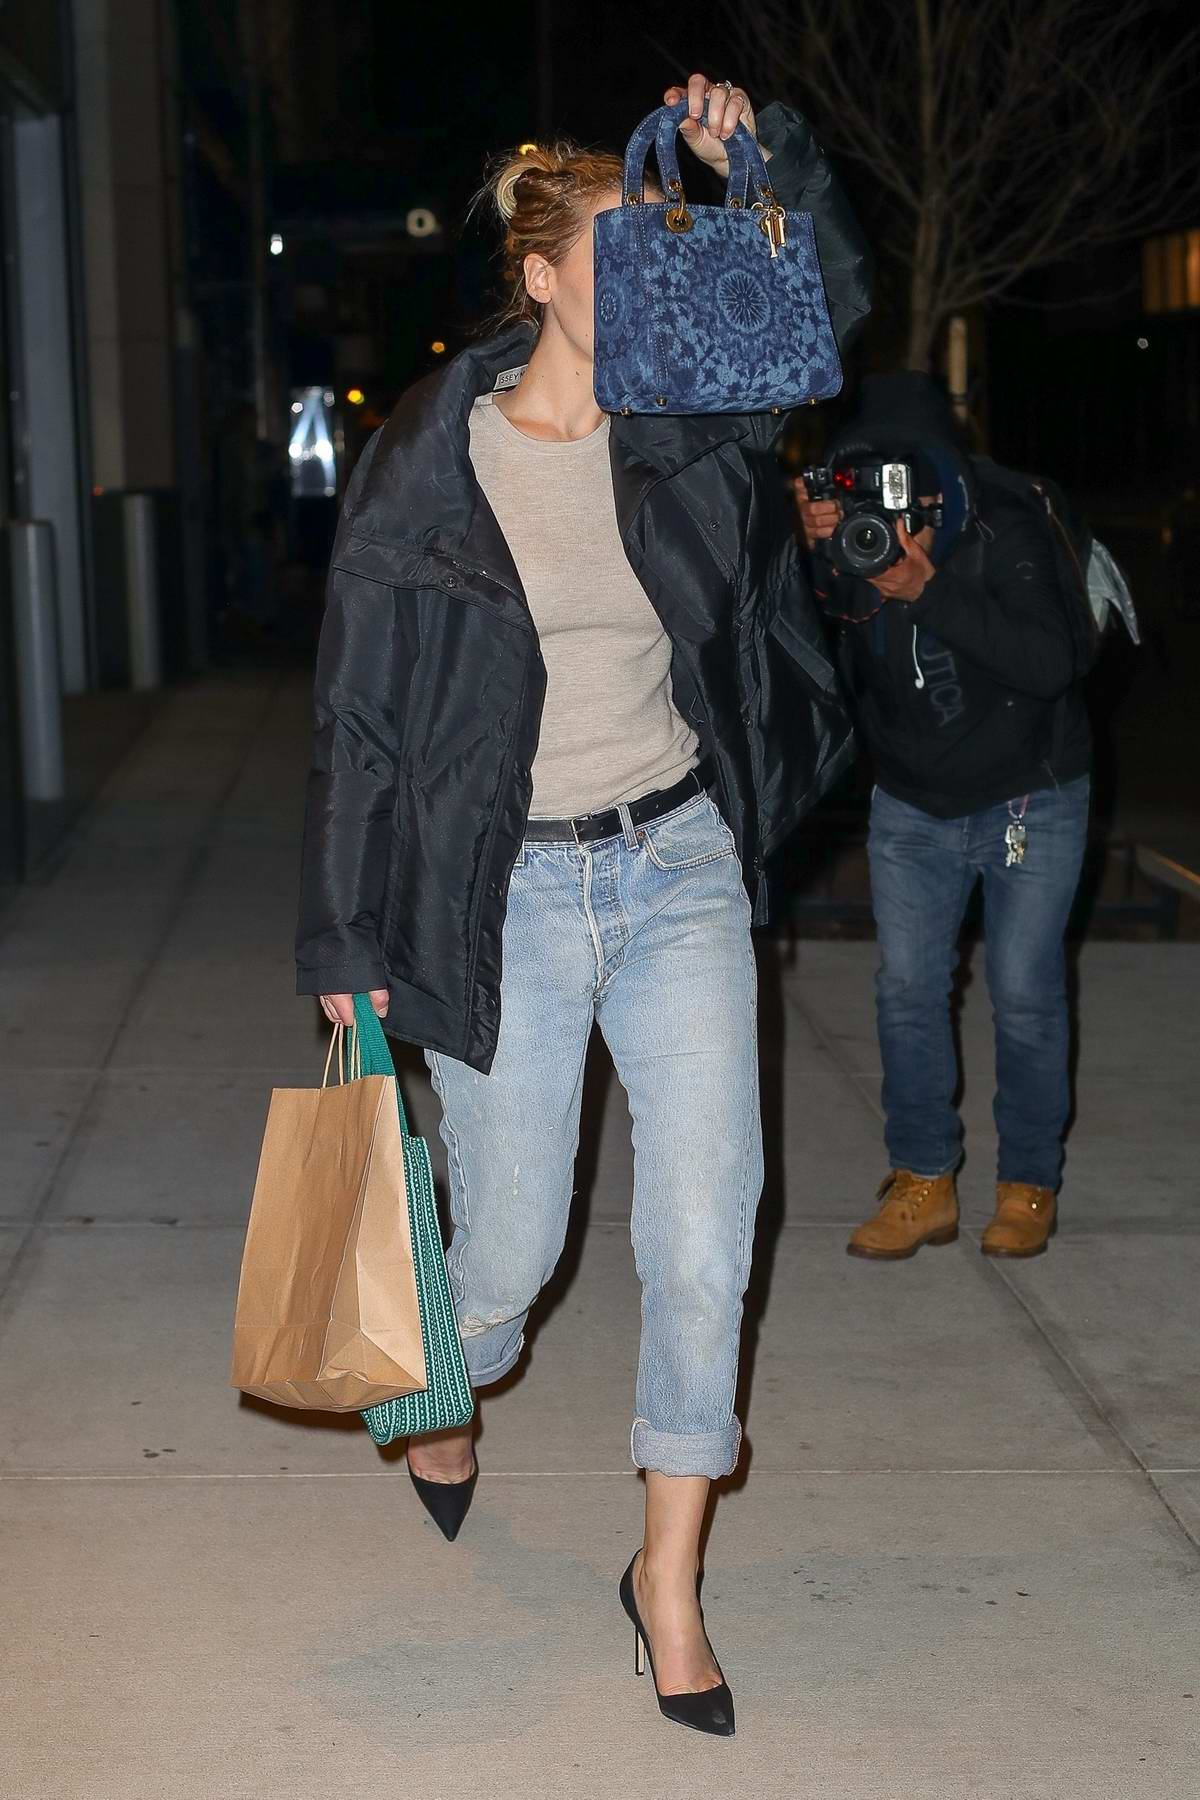 Jennifer Lawrence cover her face with her purse as she leaves a restaurant in New York City